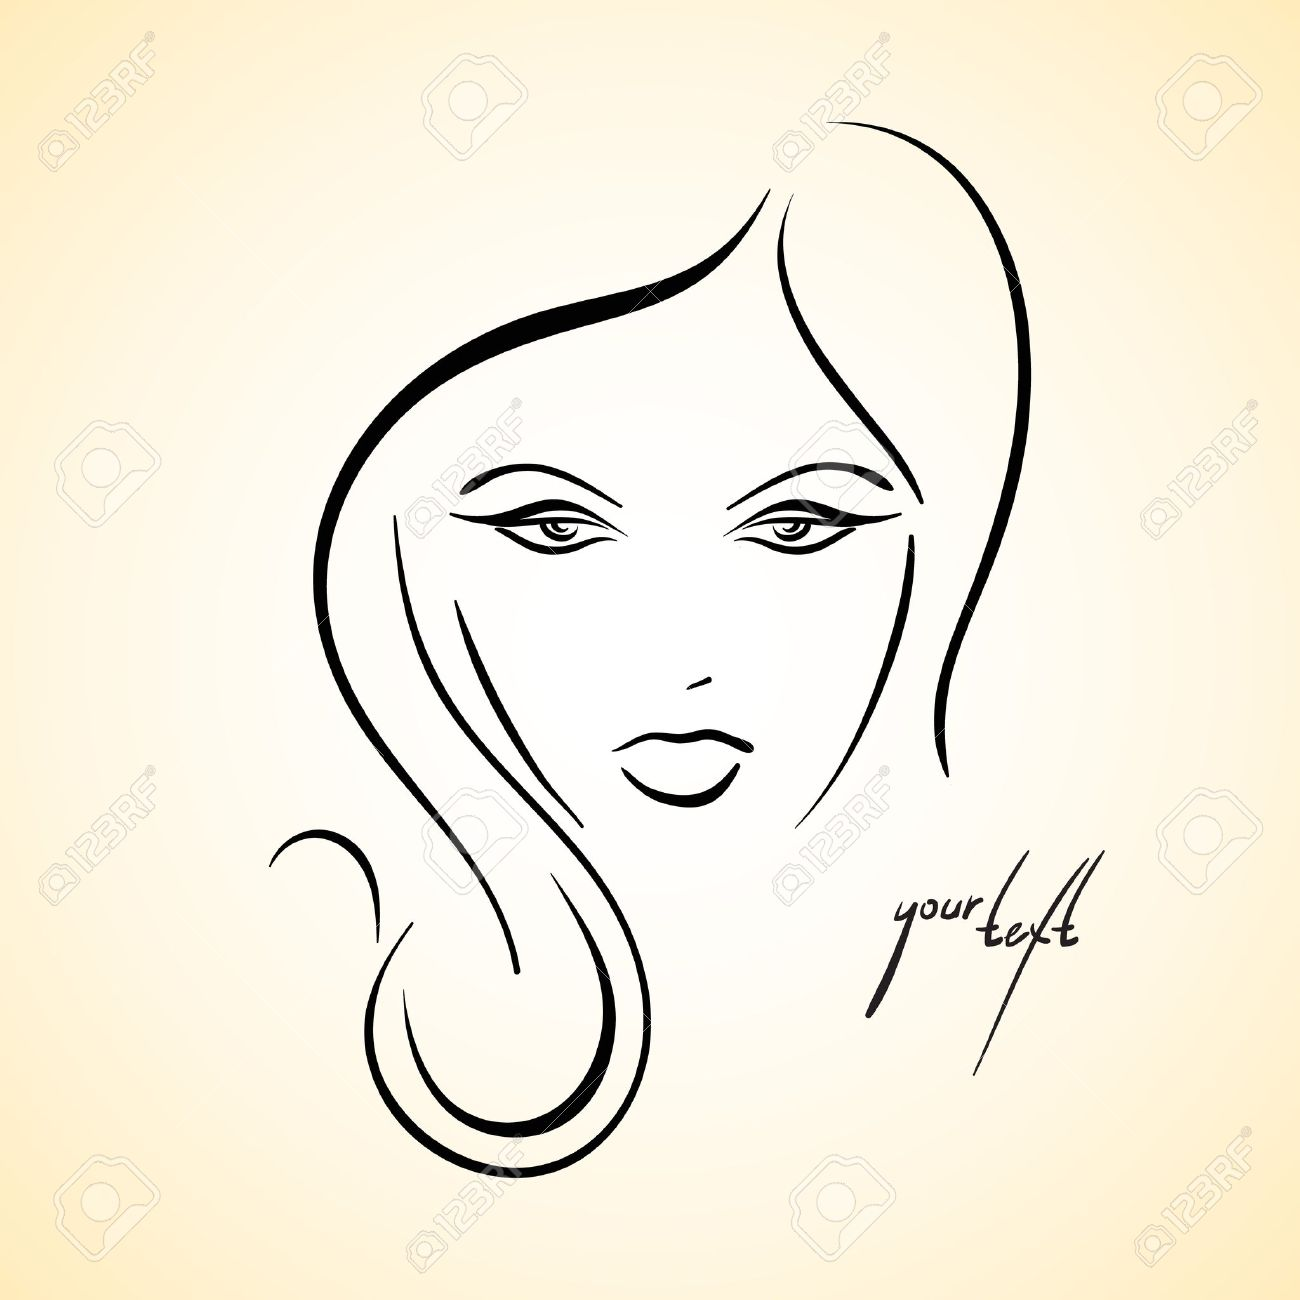 Stylish drawn girl sketch stock vector 13554723